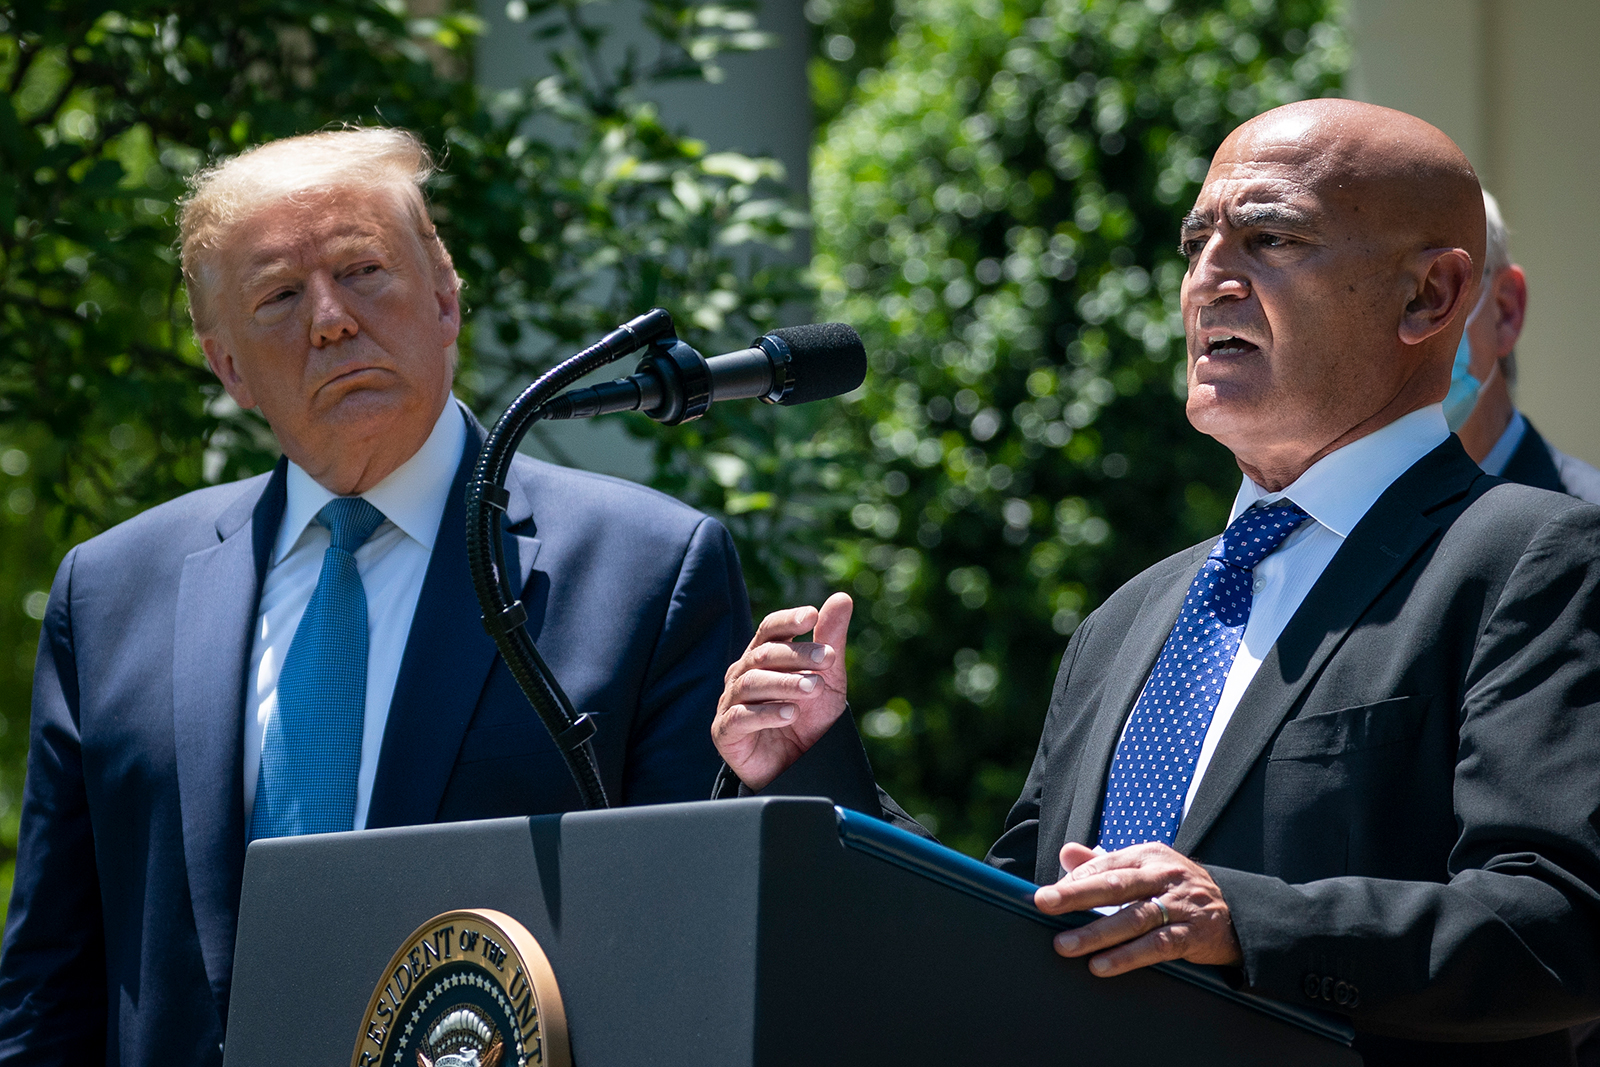 President Donald Trump listens as Moncef Slaoui, the head of the US government's effort to develop avaccine against Covid-19, speaks about coronavirus vaccine development in the Rose Garden of the White House, in Washington, DC on May 15.